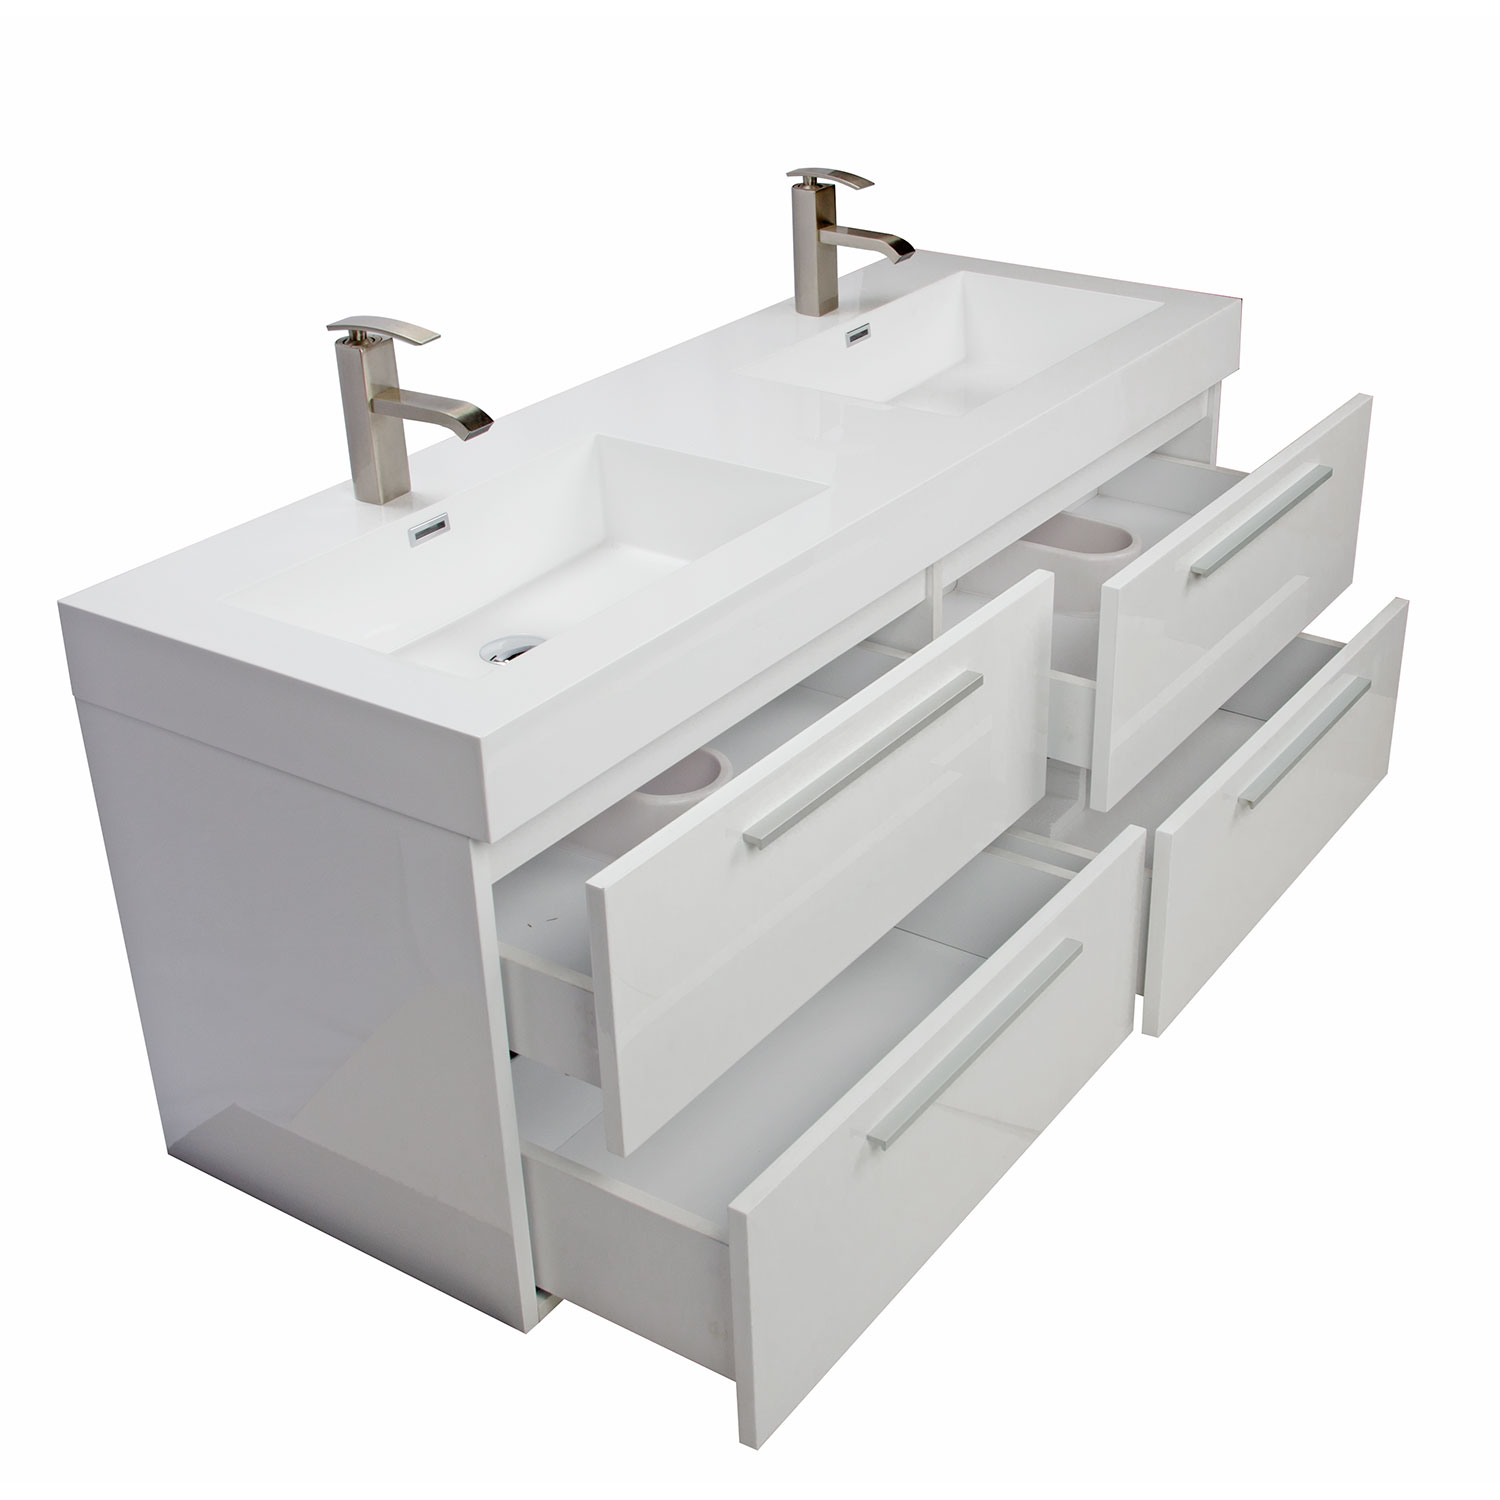 54 inch bathroom vanity double sink. Buy 54 Inch Modern Double sink Vanity Set with Drawers Gloss White  TN B1380 HGW Conceptbaths com